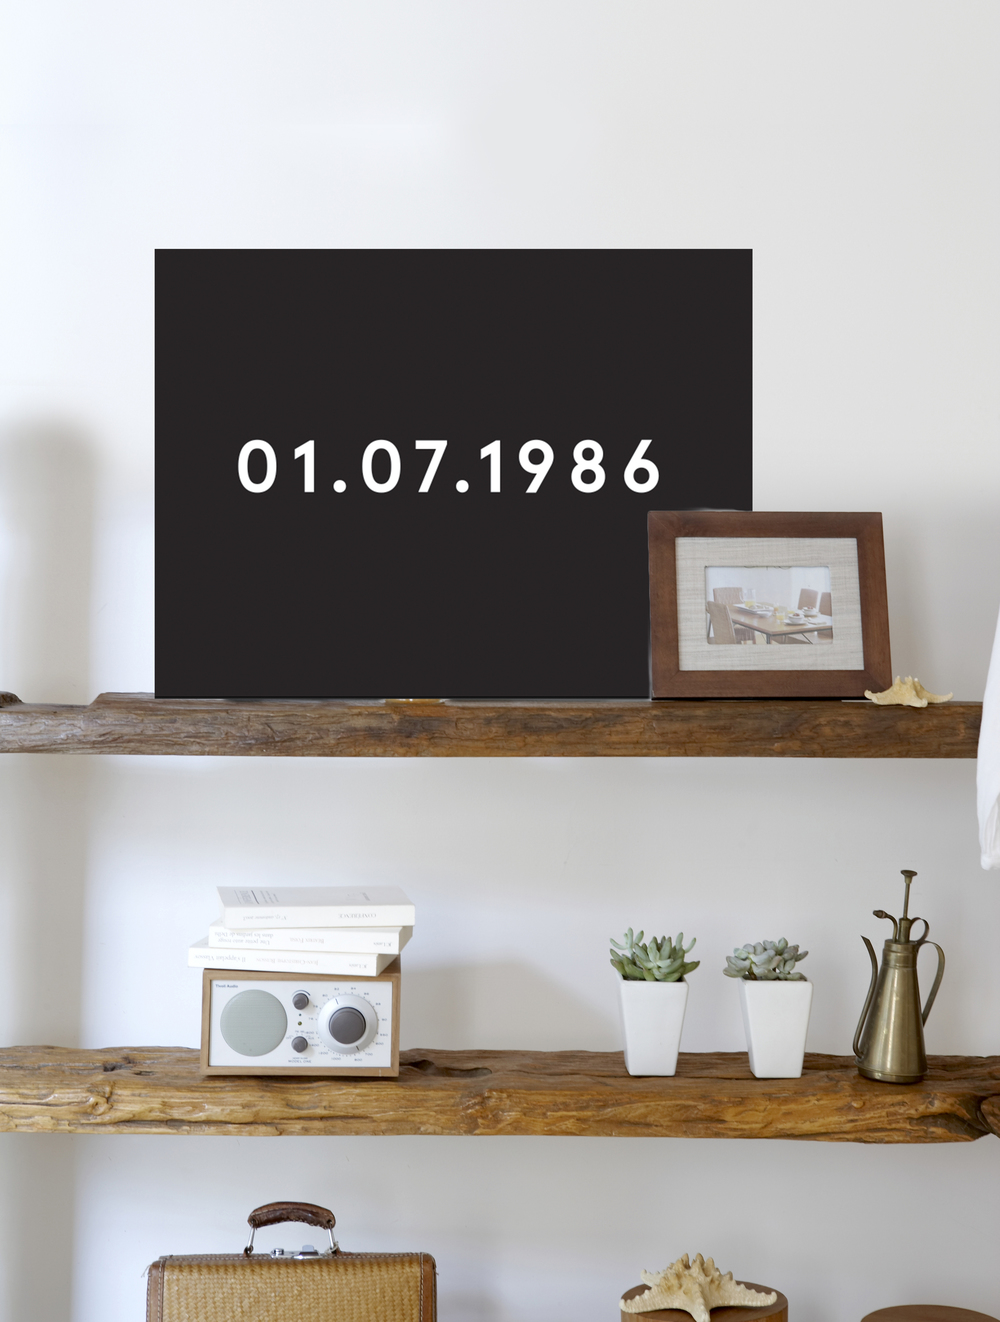 Yesterday Series — 10 x 8 on birch plywood, customizable date.